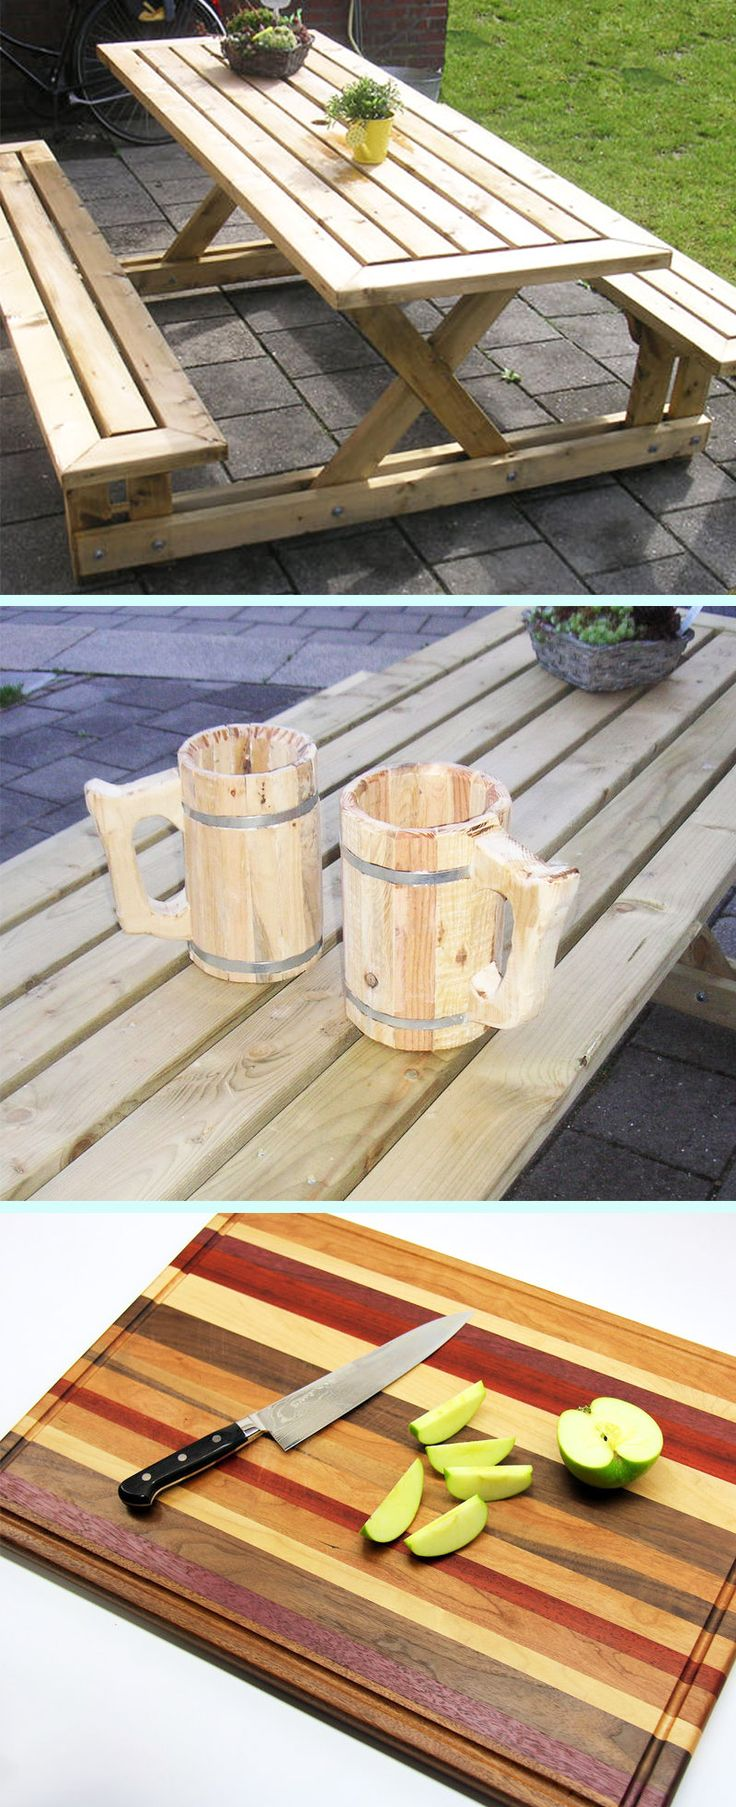 Just getting started with woodworking? These 50 projects are designed for beginners: picnic table, beer mug, cutting board, and more!